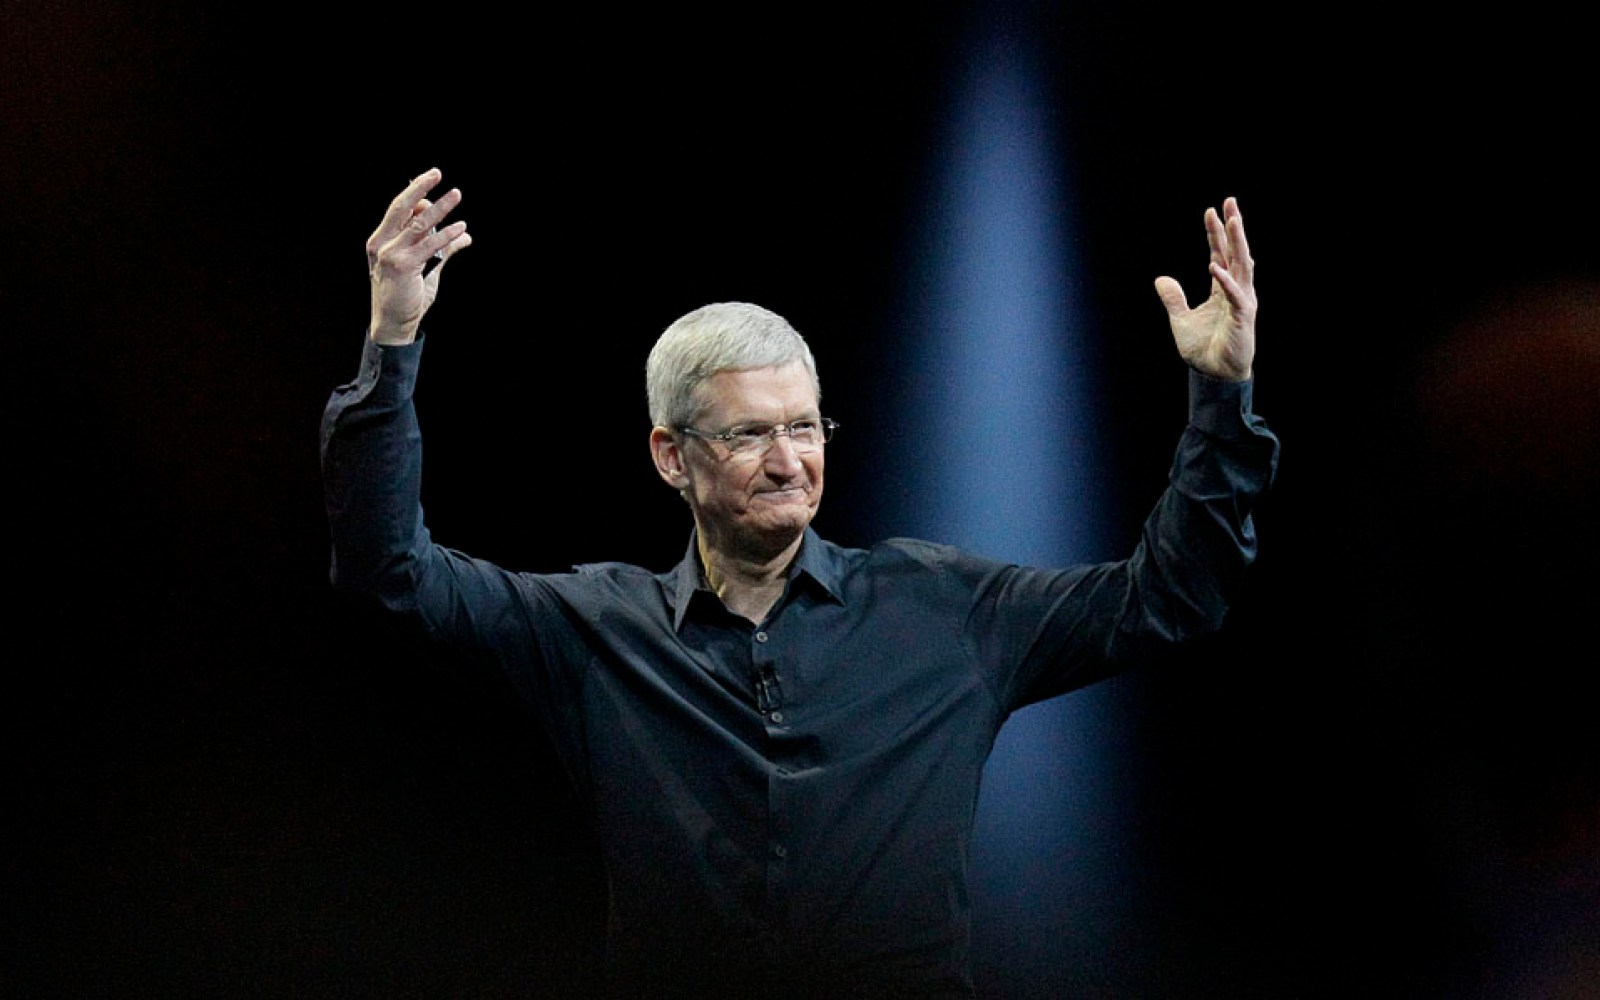 Apple made more revenue from iPhone in a single quarter than Google has ever made from Android